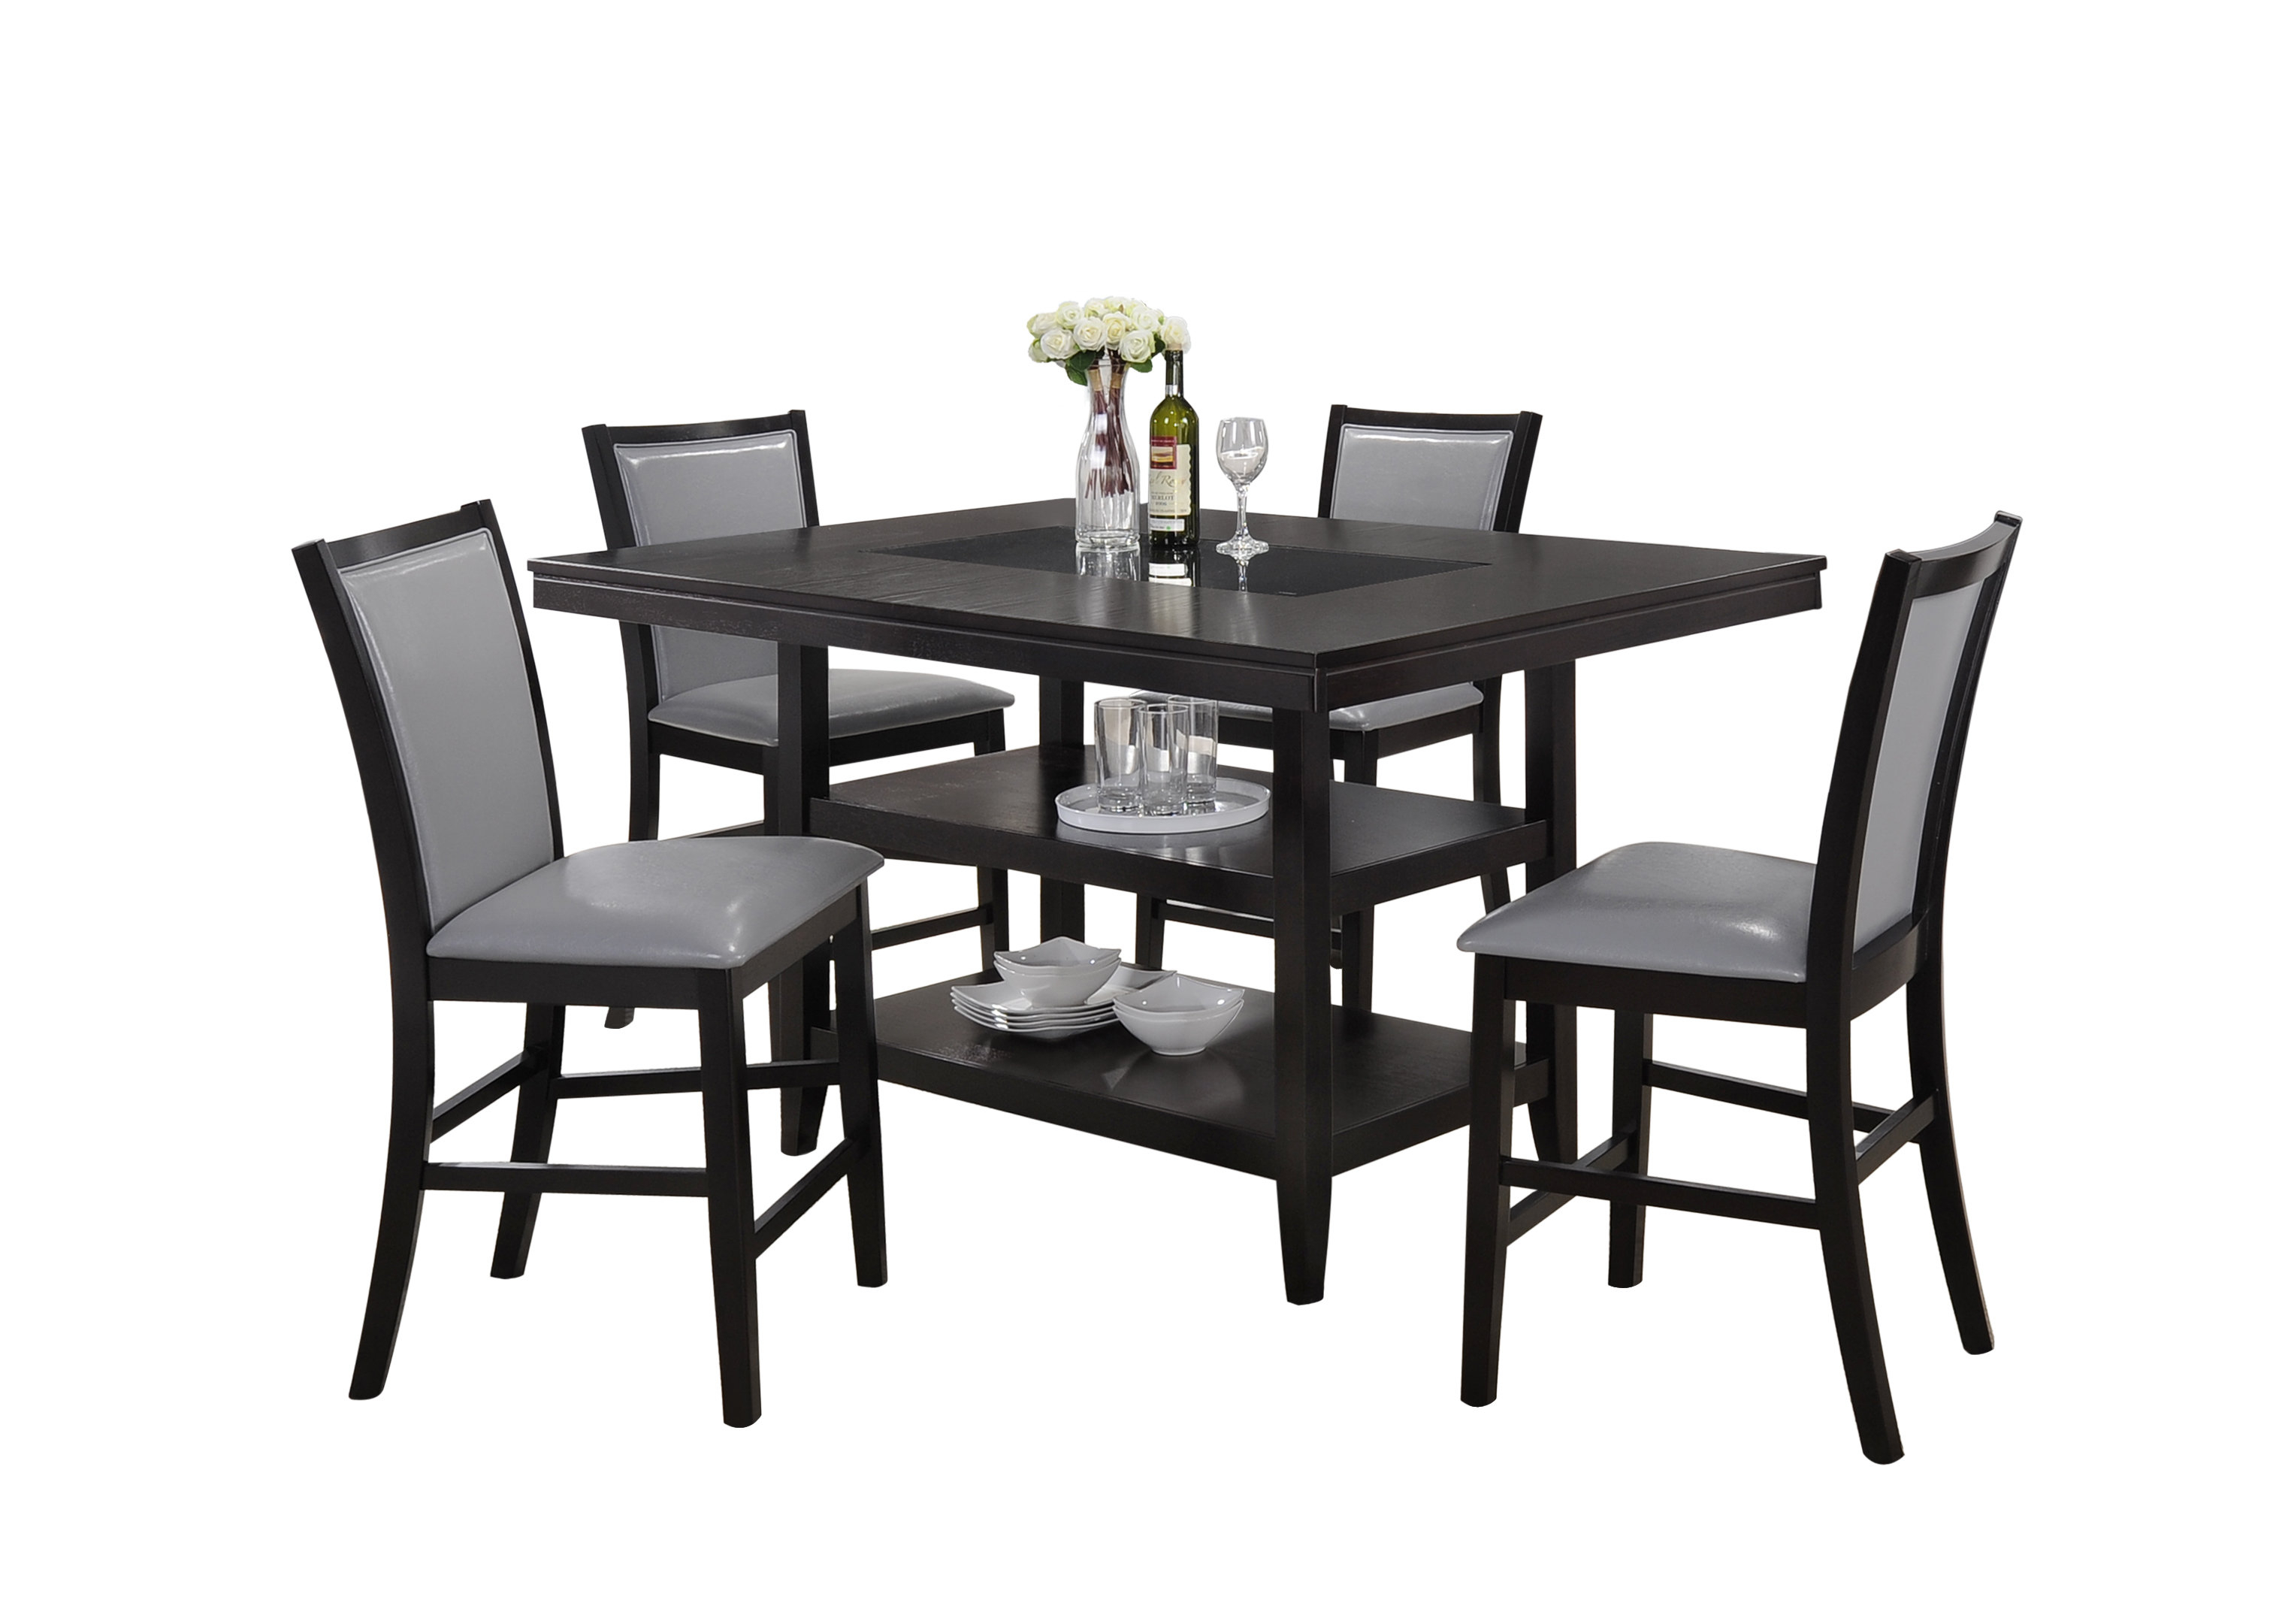 Ashton 5 Piece Dining Set With Best And Newest Goodman 5 Piece Solid Wood Dining Sets (Set Of 5) (Image 2 of 20)